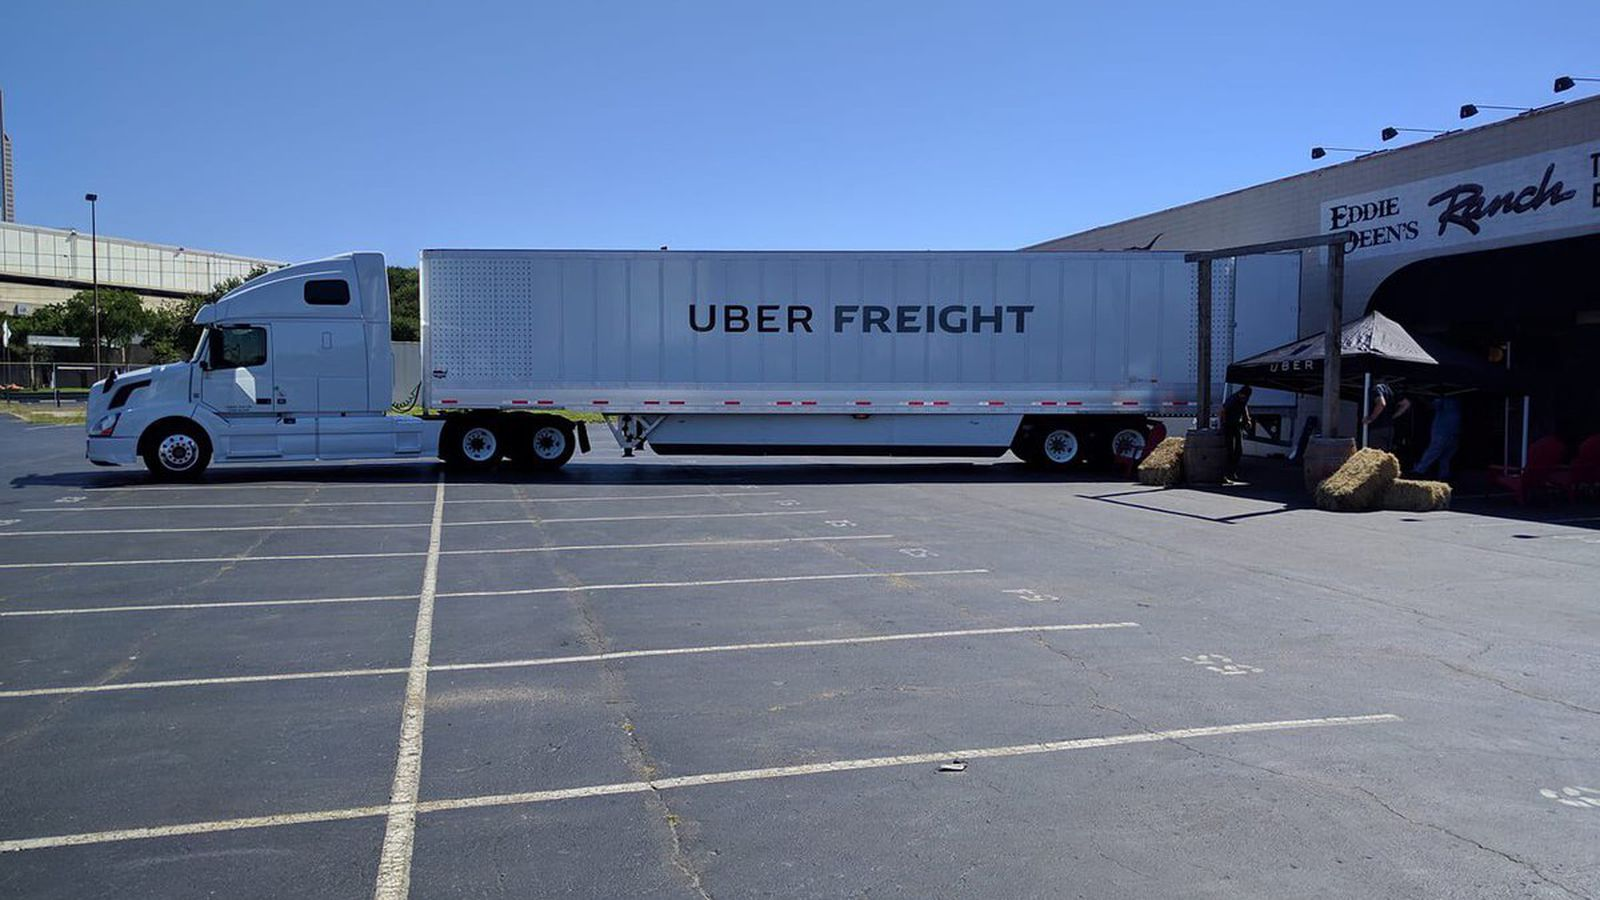 Uber Freight Launches For Trucking Companies and Owner-Operator Truck Drivers